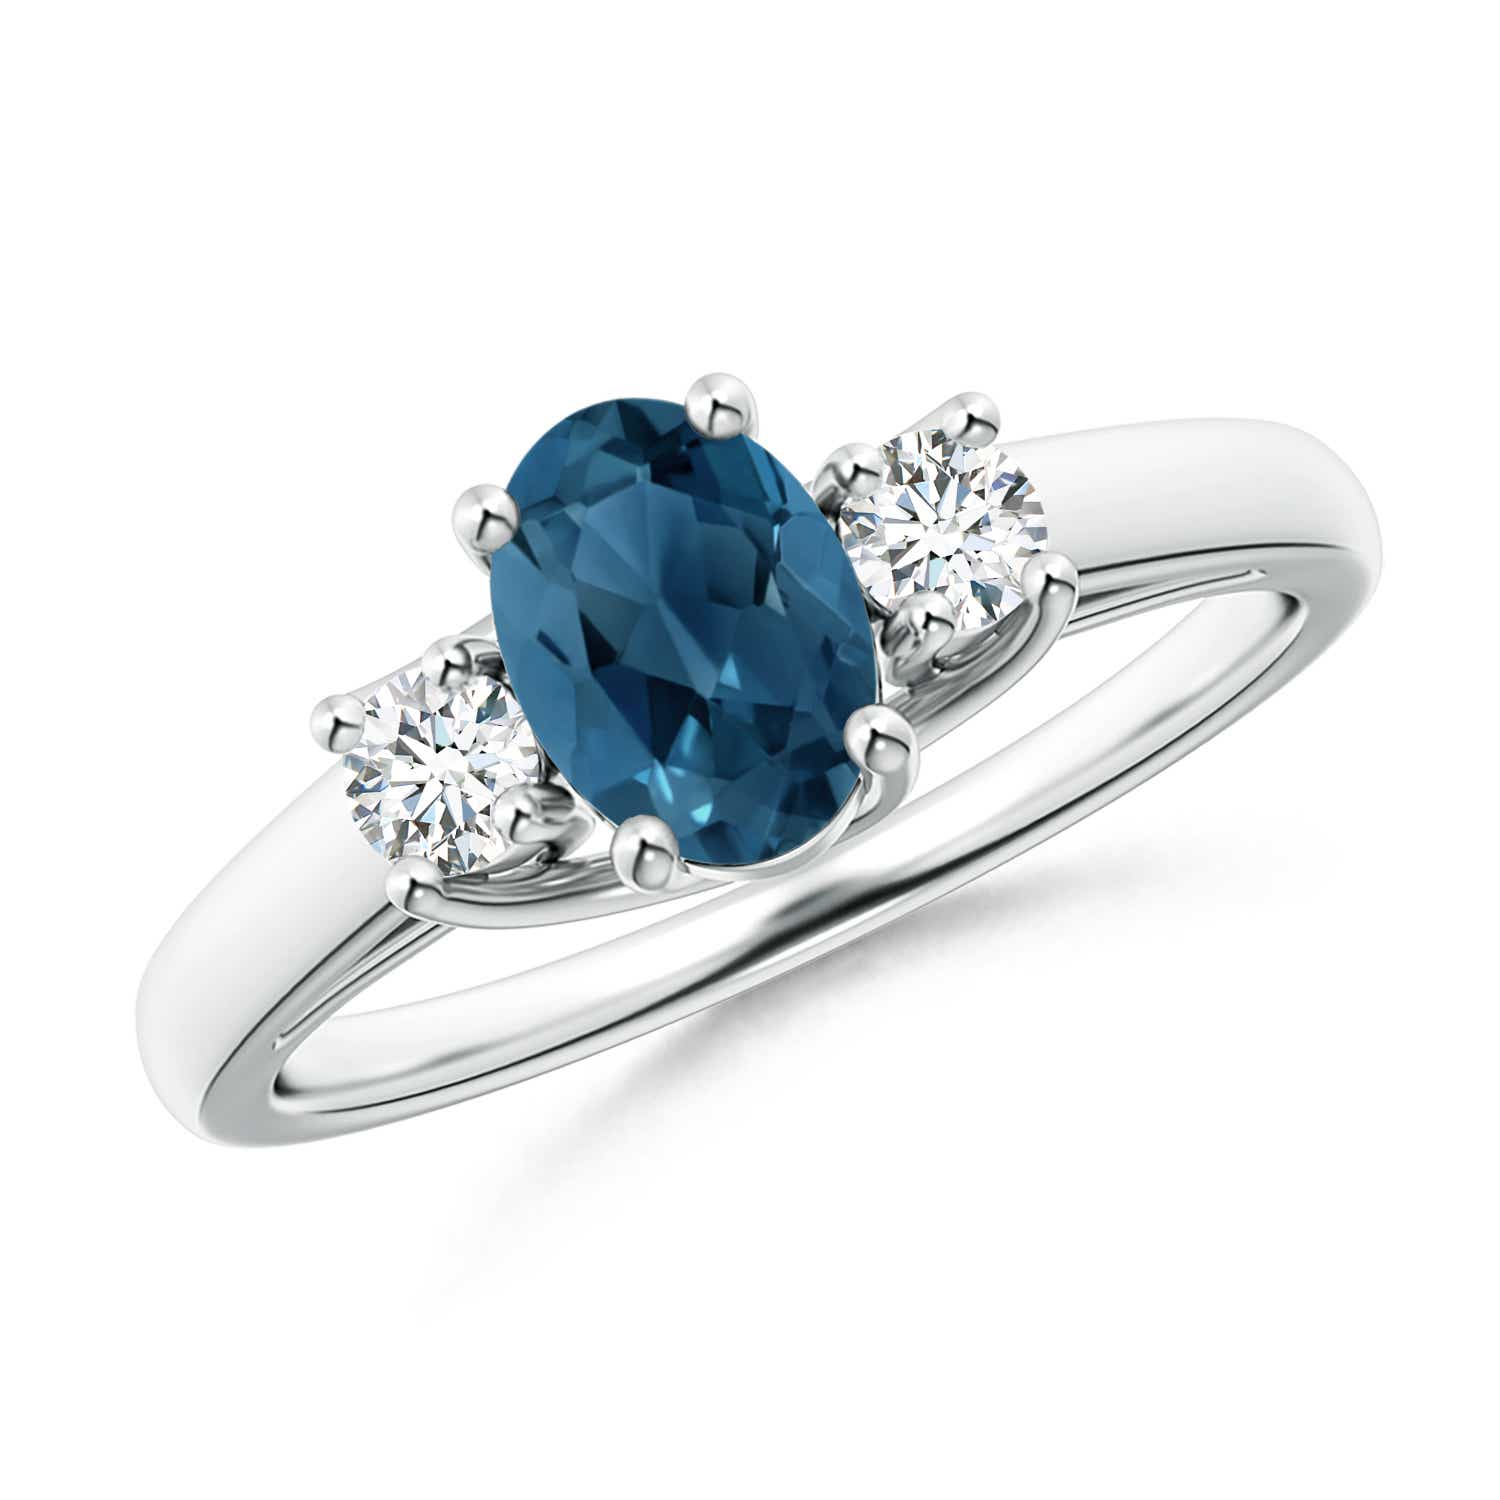 Angara Natural London Blue Topaz and Diamond Three Stone Ring in White Gold C164foo